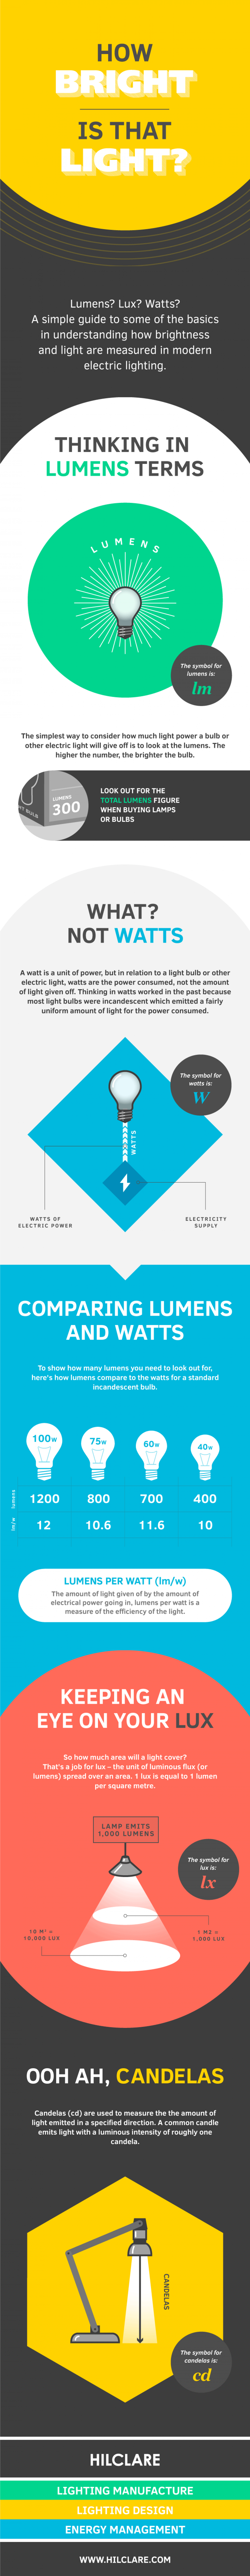 How Bright is That Light? Infographic